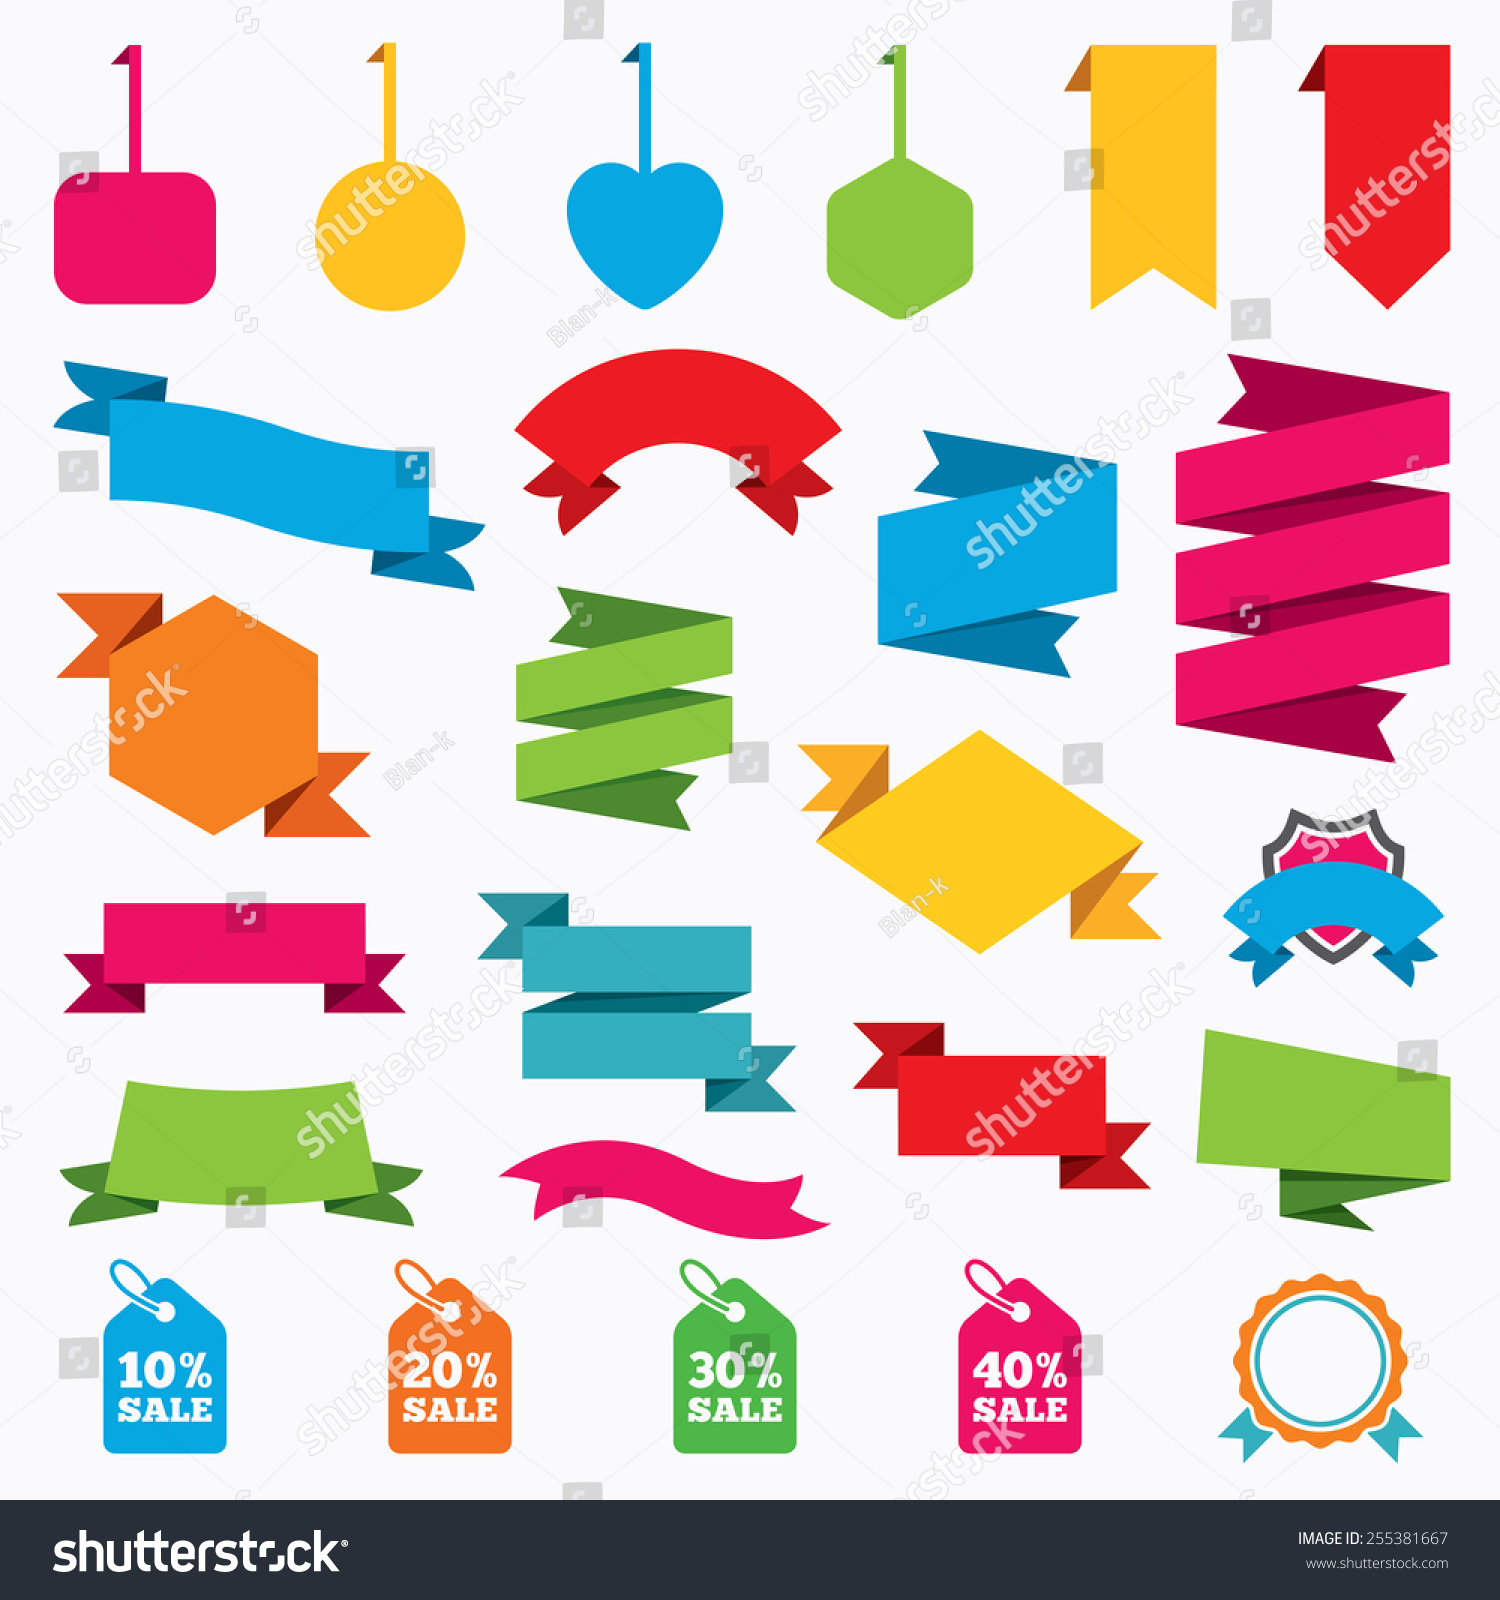 Web Stickers Tags Banners Sale Price Stock Vector 255381667 ...